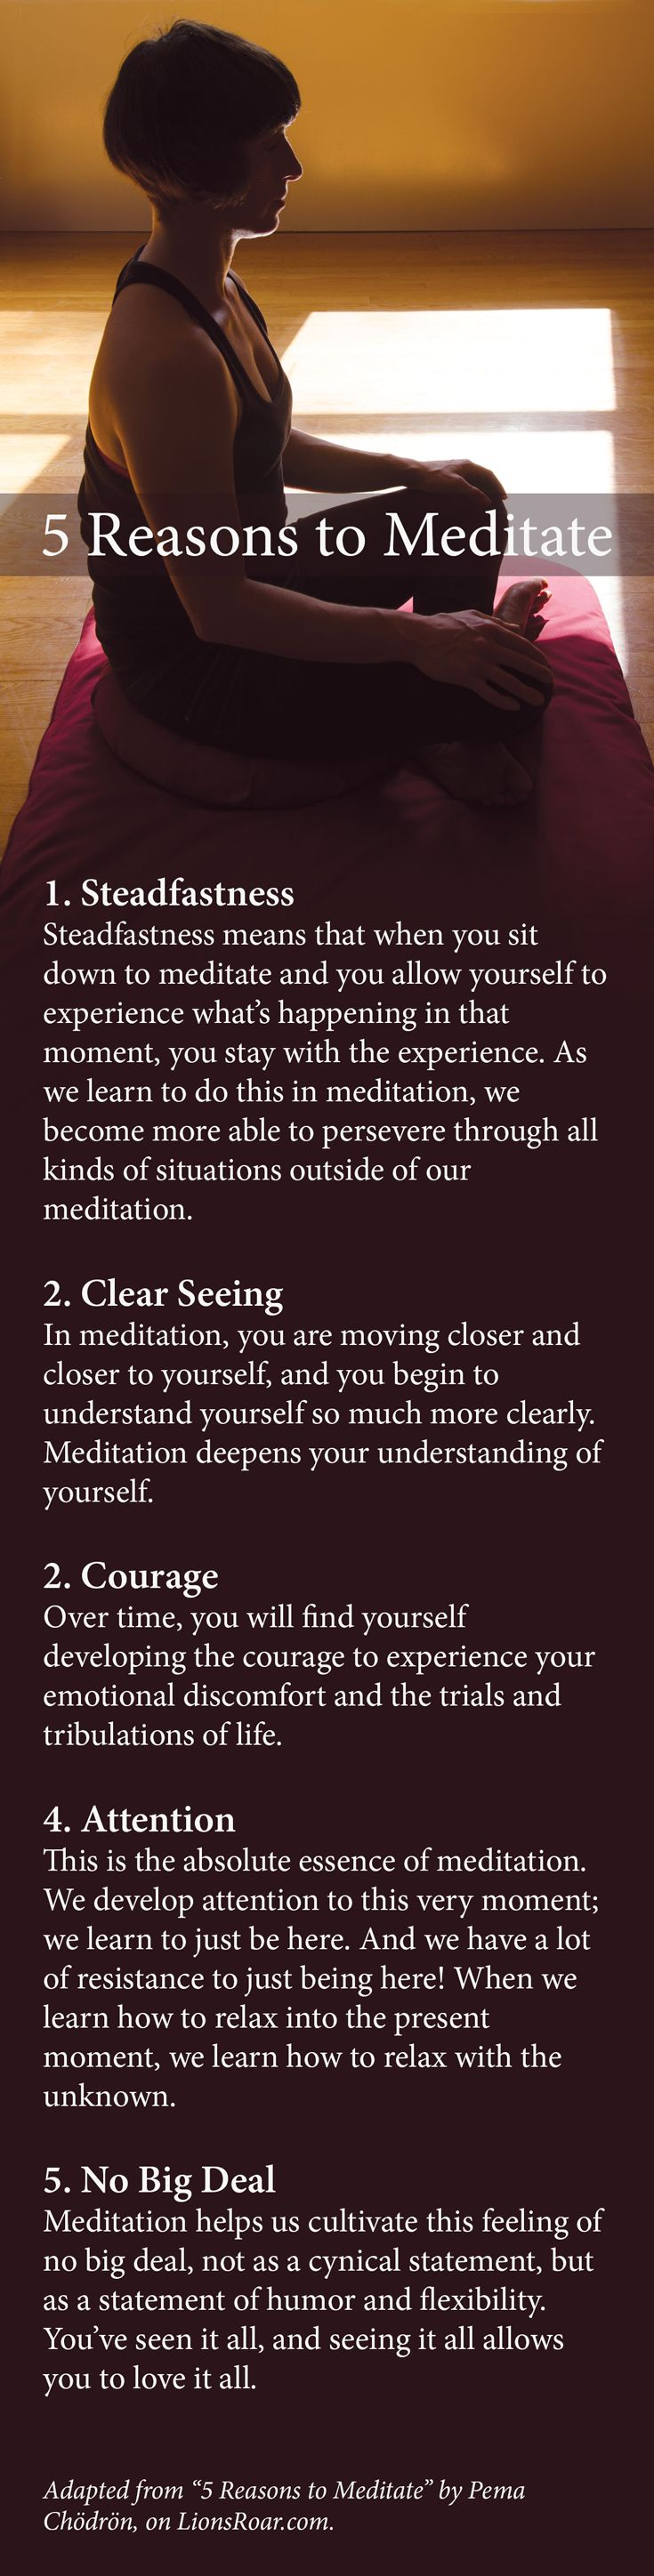 "Adapted from ""5 Reasons to Meditate,"" by Pema Chödrön."